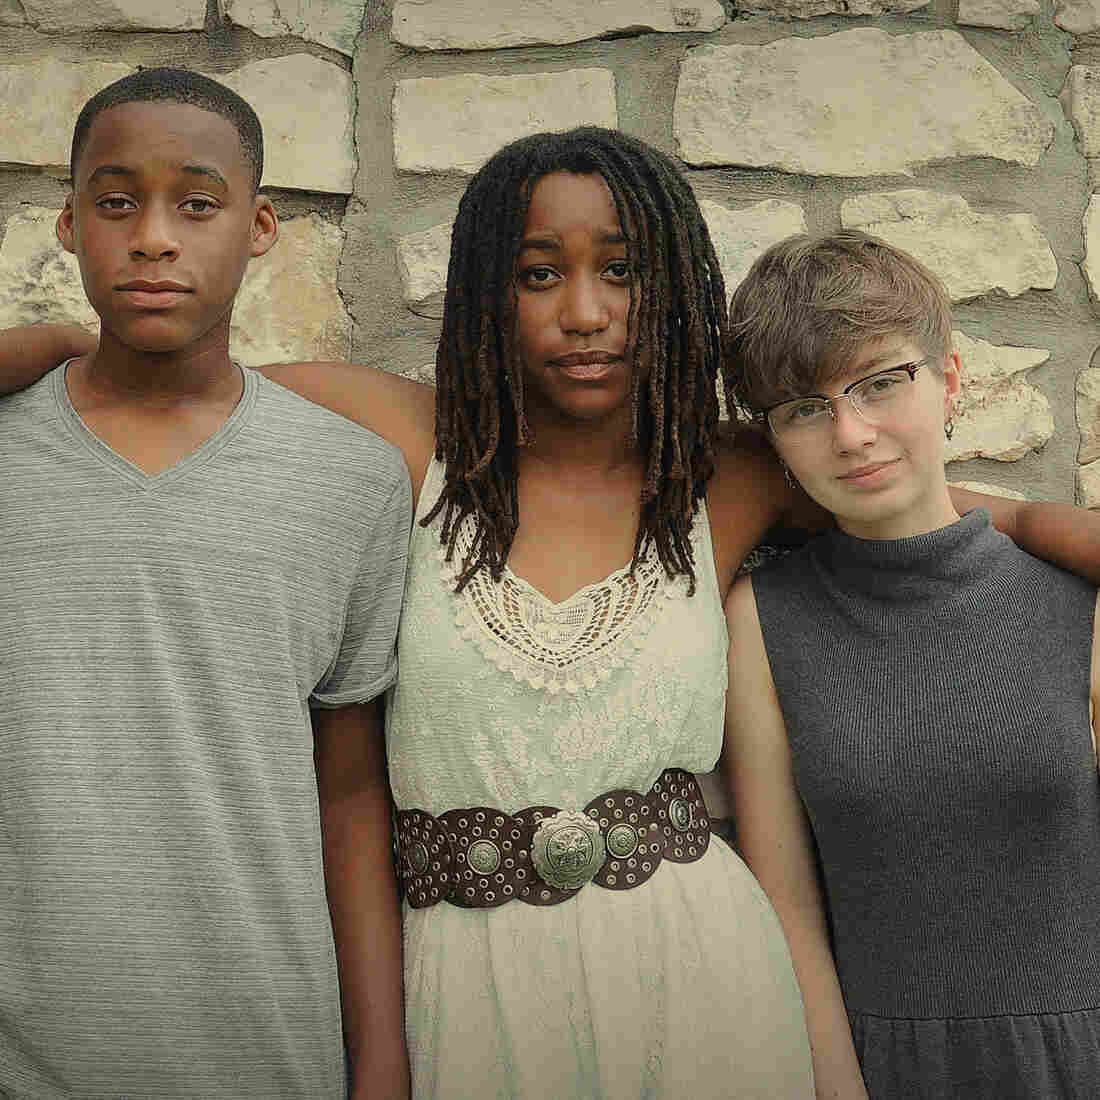 Austin-based Charlie Belle, led by 16-year-old Jendayi Bonds (center) along with her brother Gyasi Bonds (left) and Zoe Czarnecki, will release a debut EP on Jan. 13.